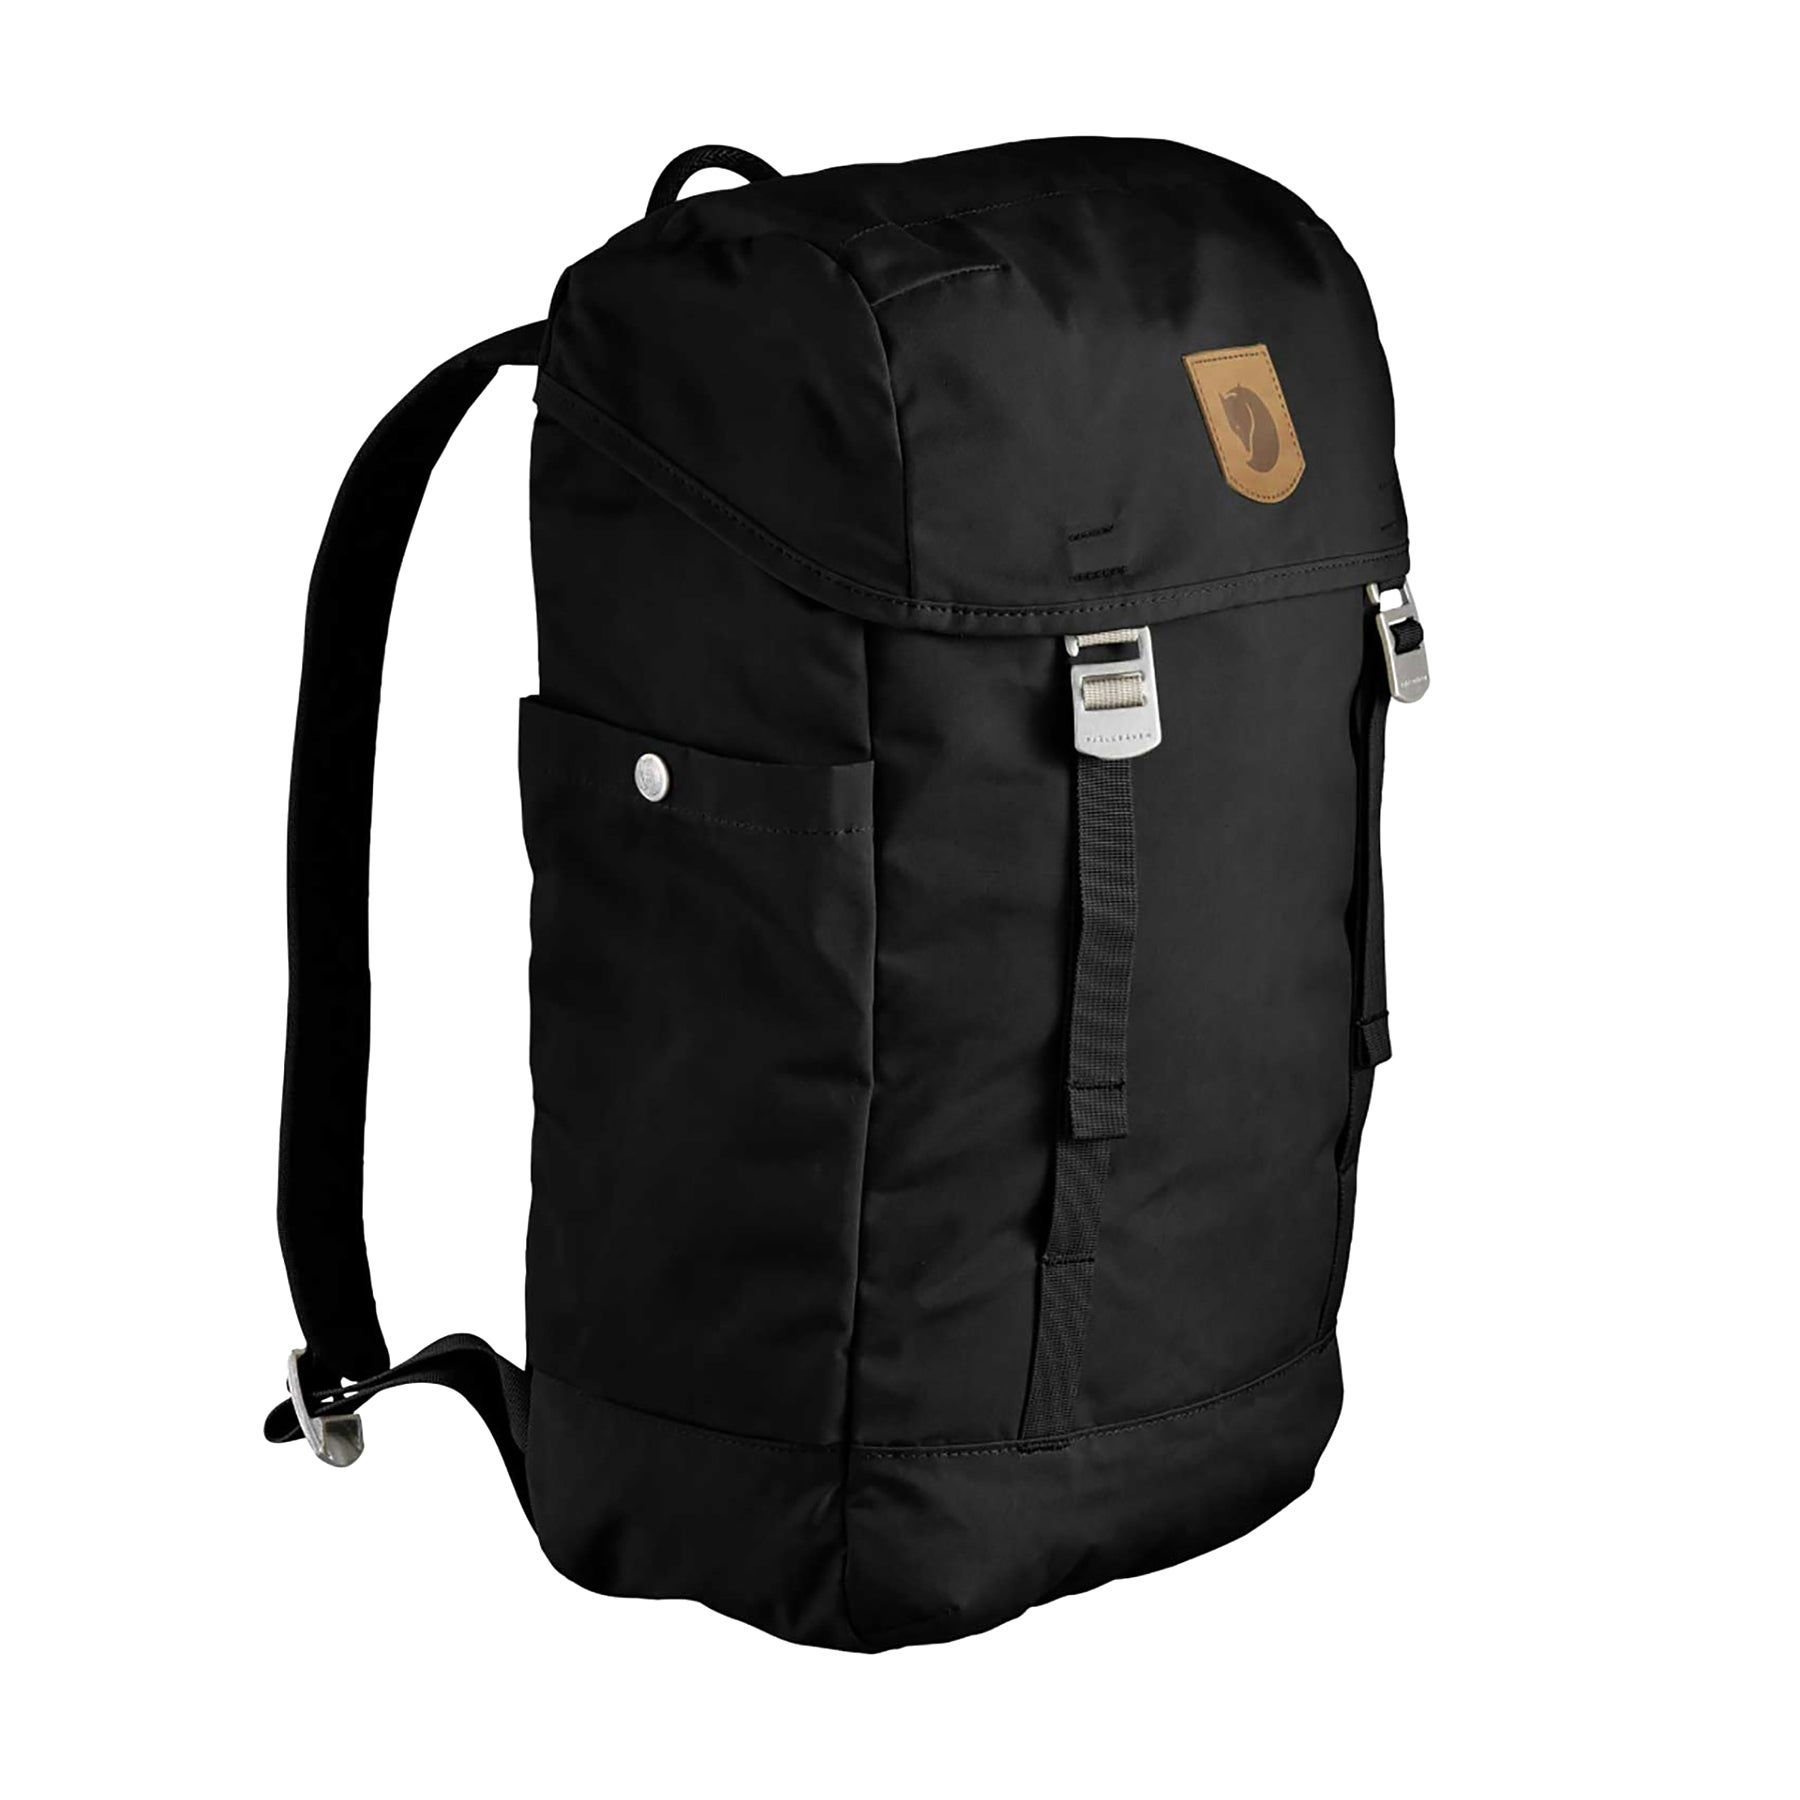 Fjallraven Greenland Top Backpack - Black